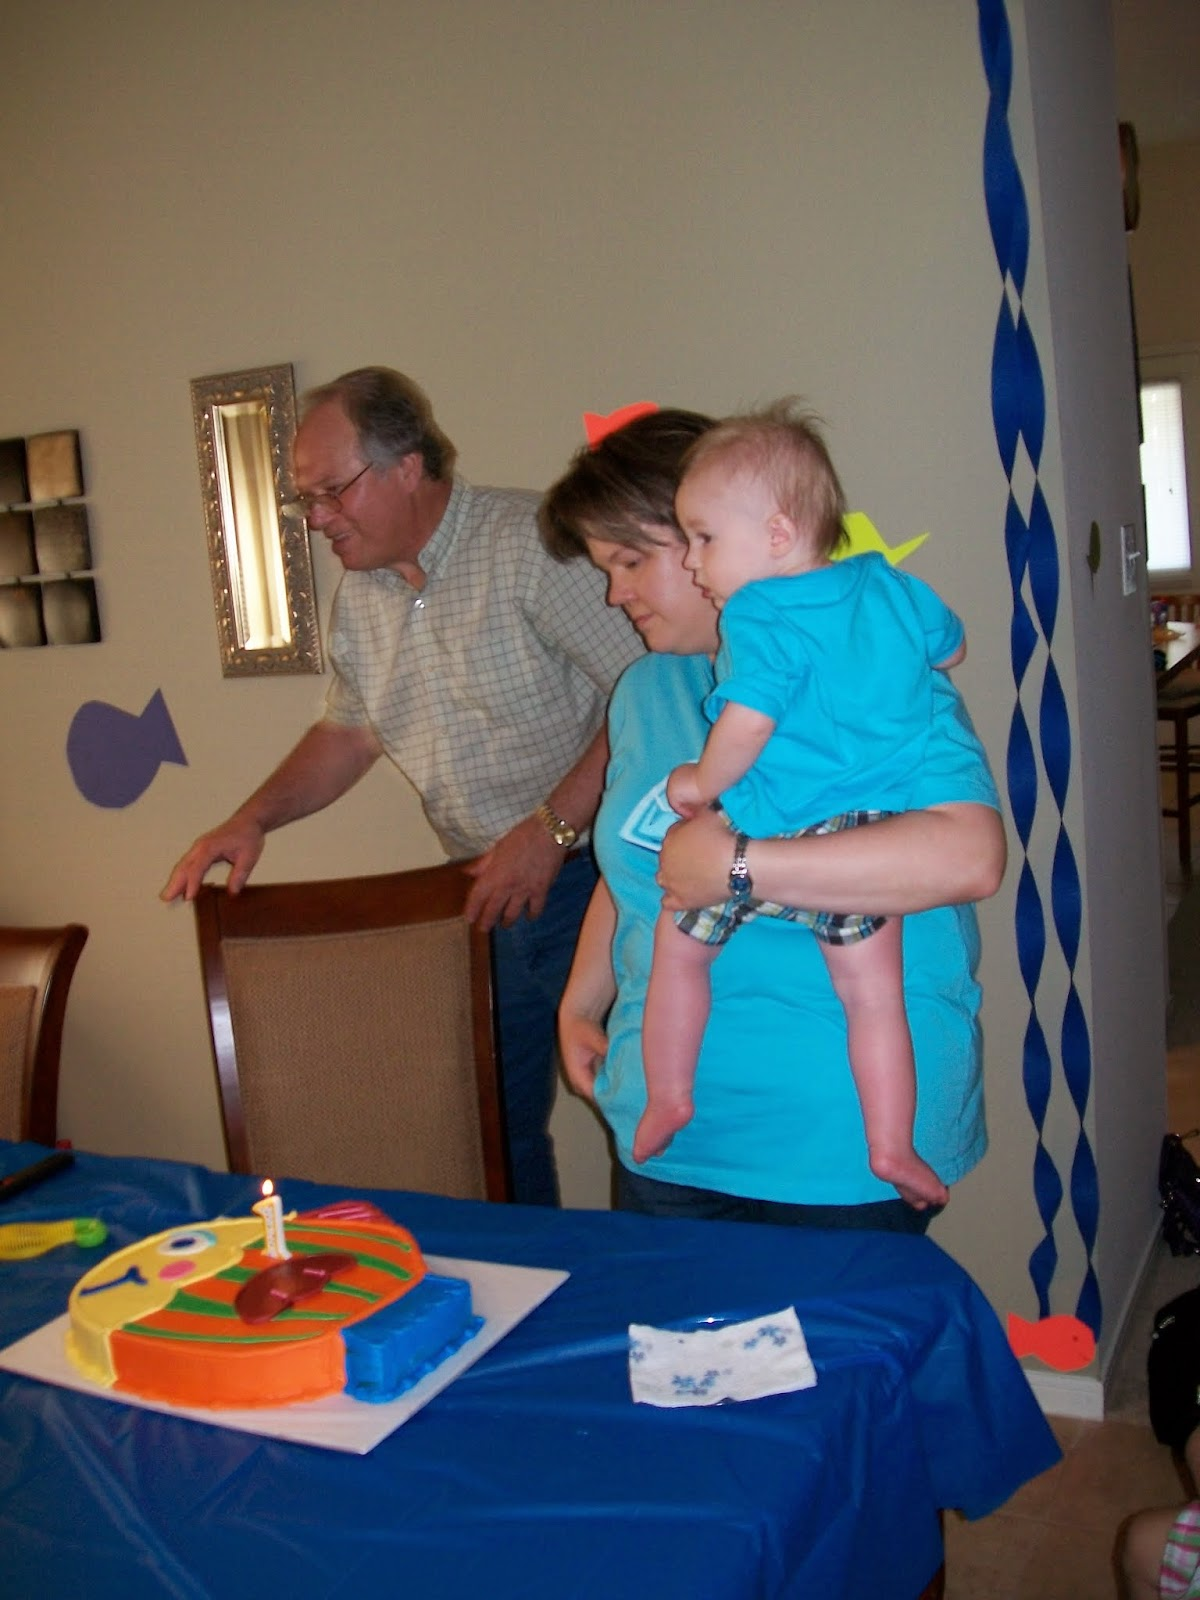 Marshalls First Birthday Party - 100_1405.JPG